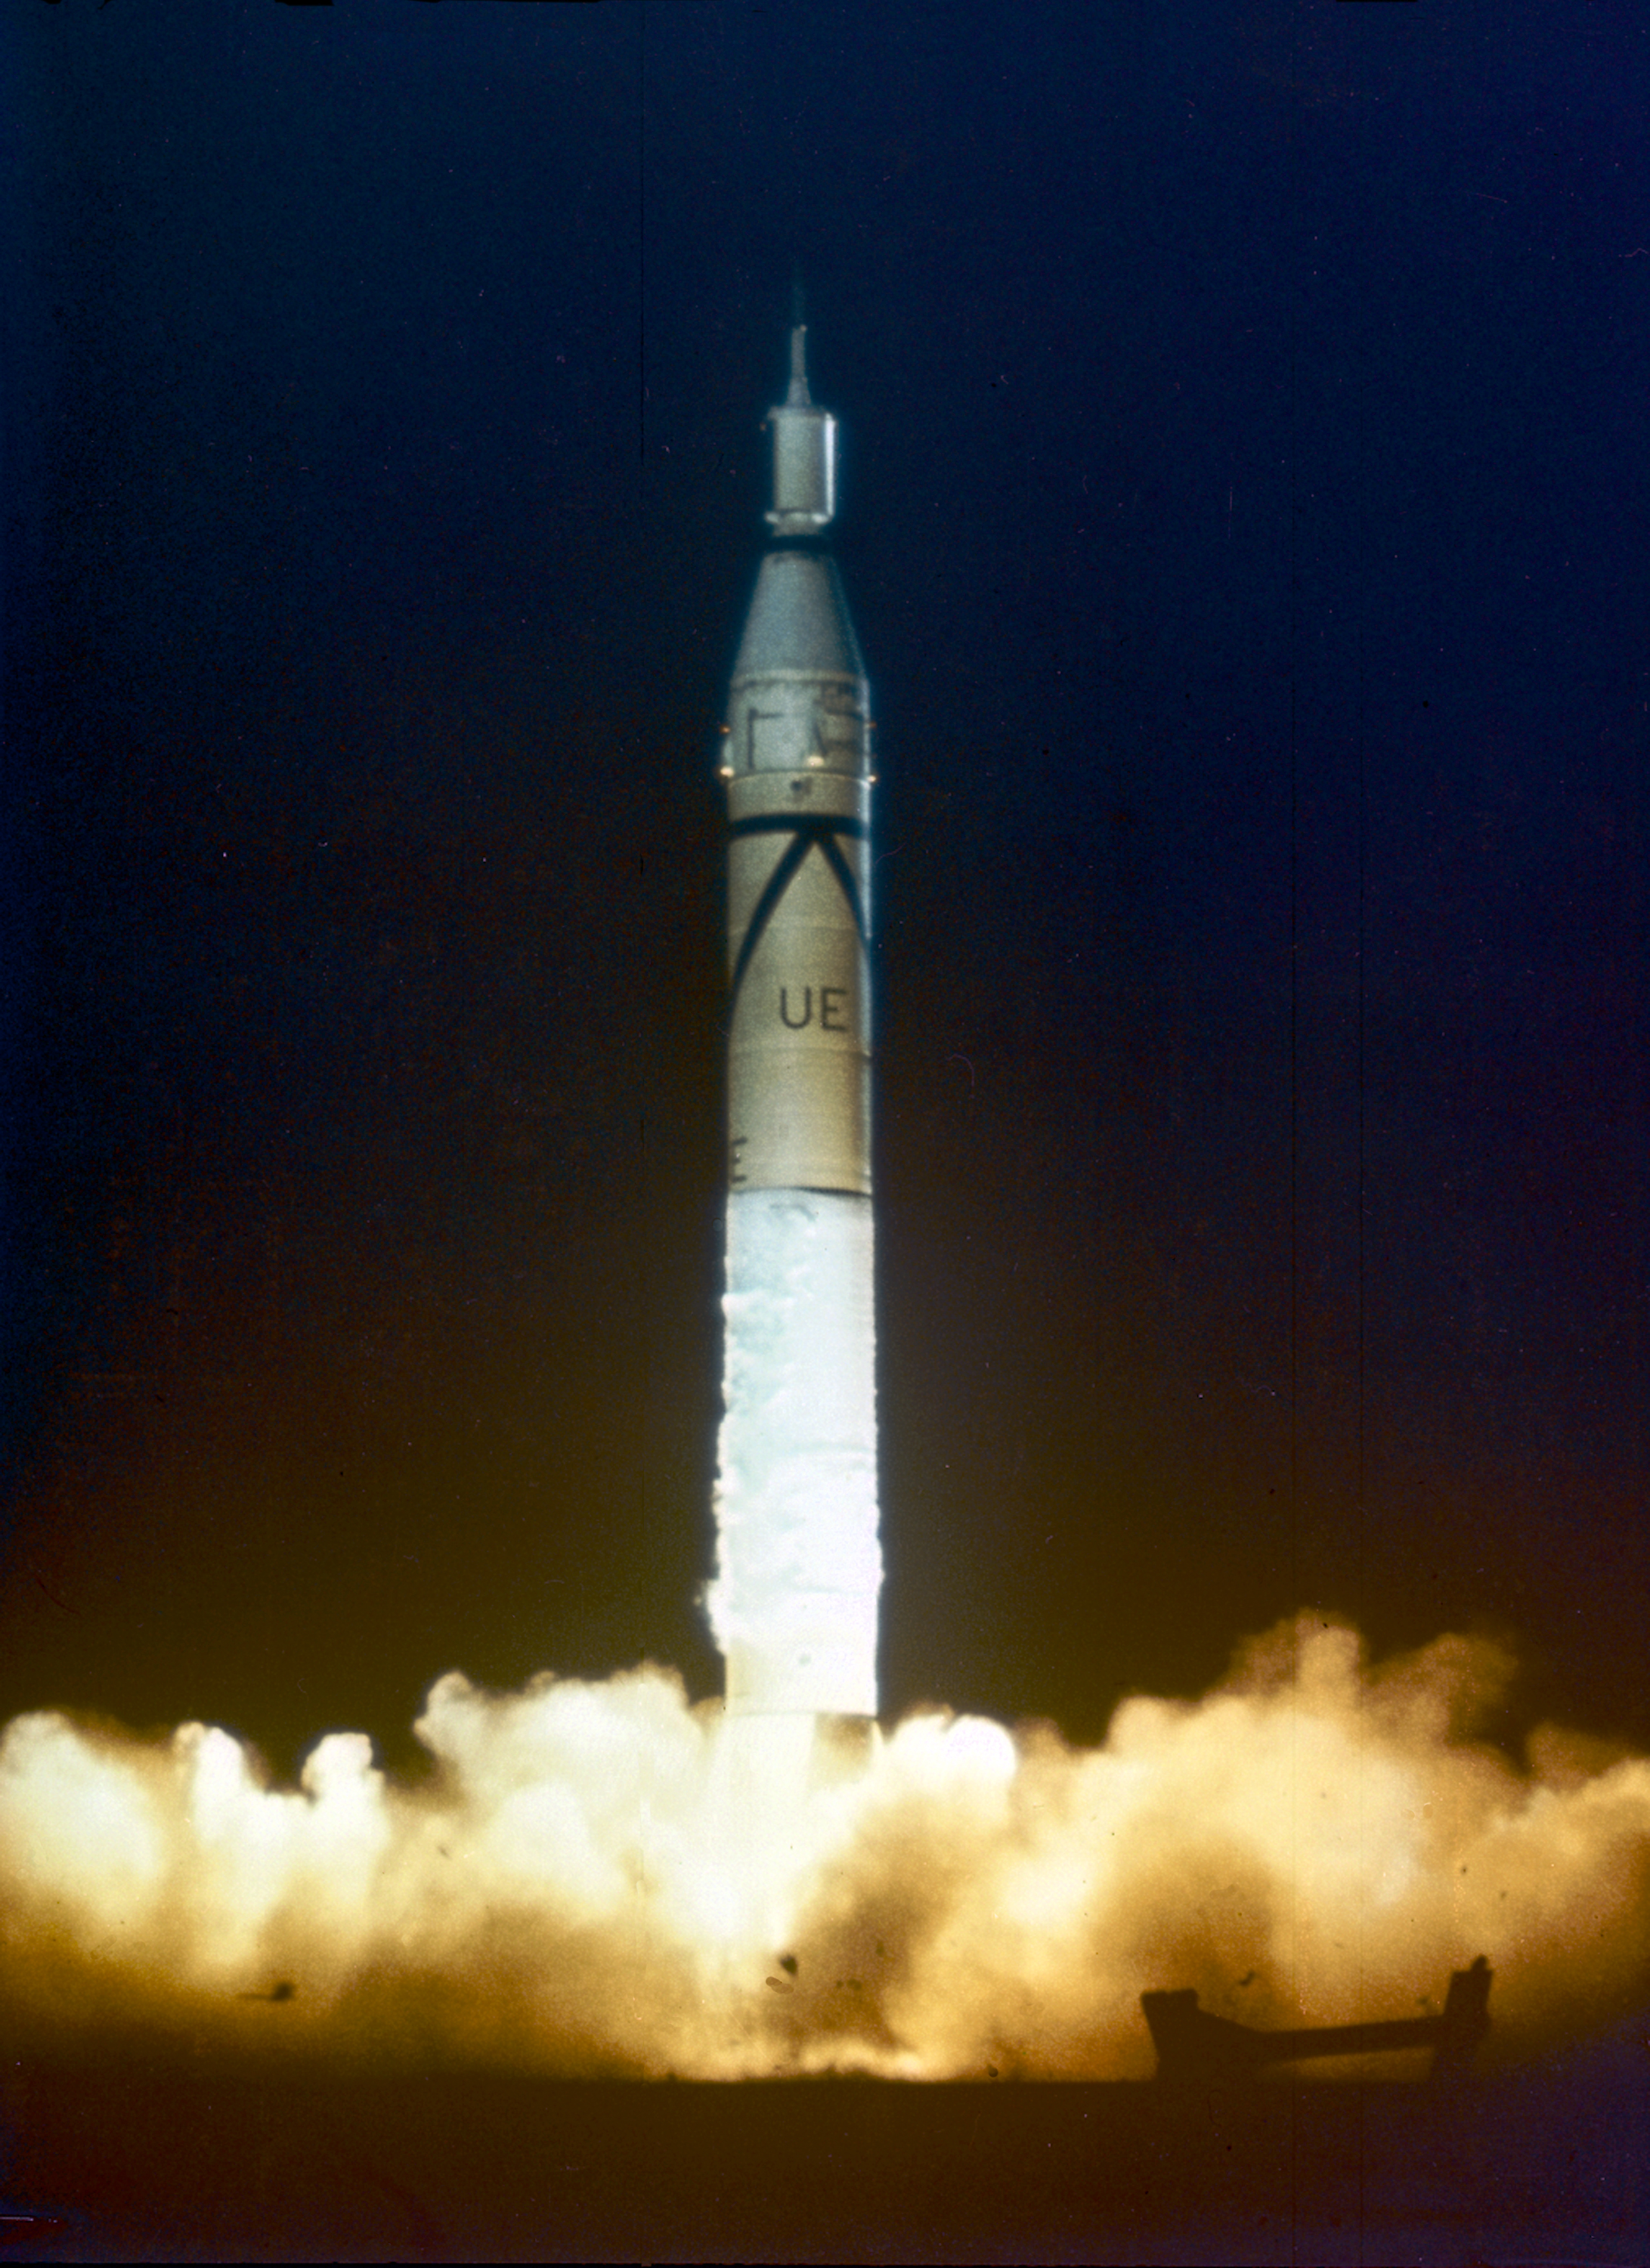 Explorer1 http://en.wikipedia.org/wiki/File:Launch_of_Jupiter_C_with_Explorer_1.jpg